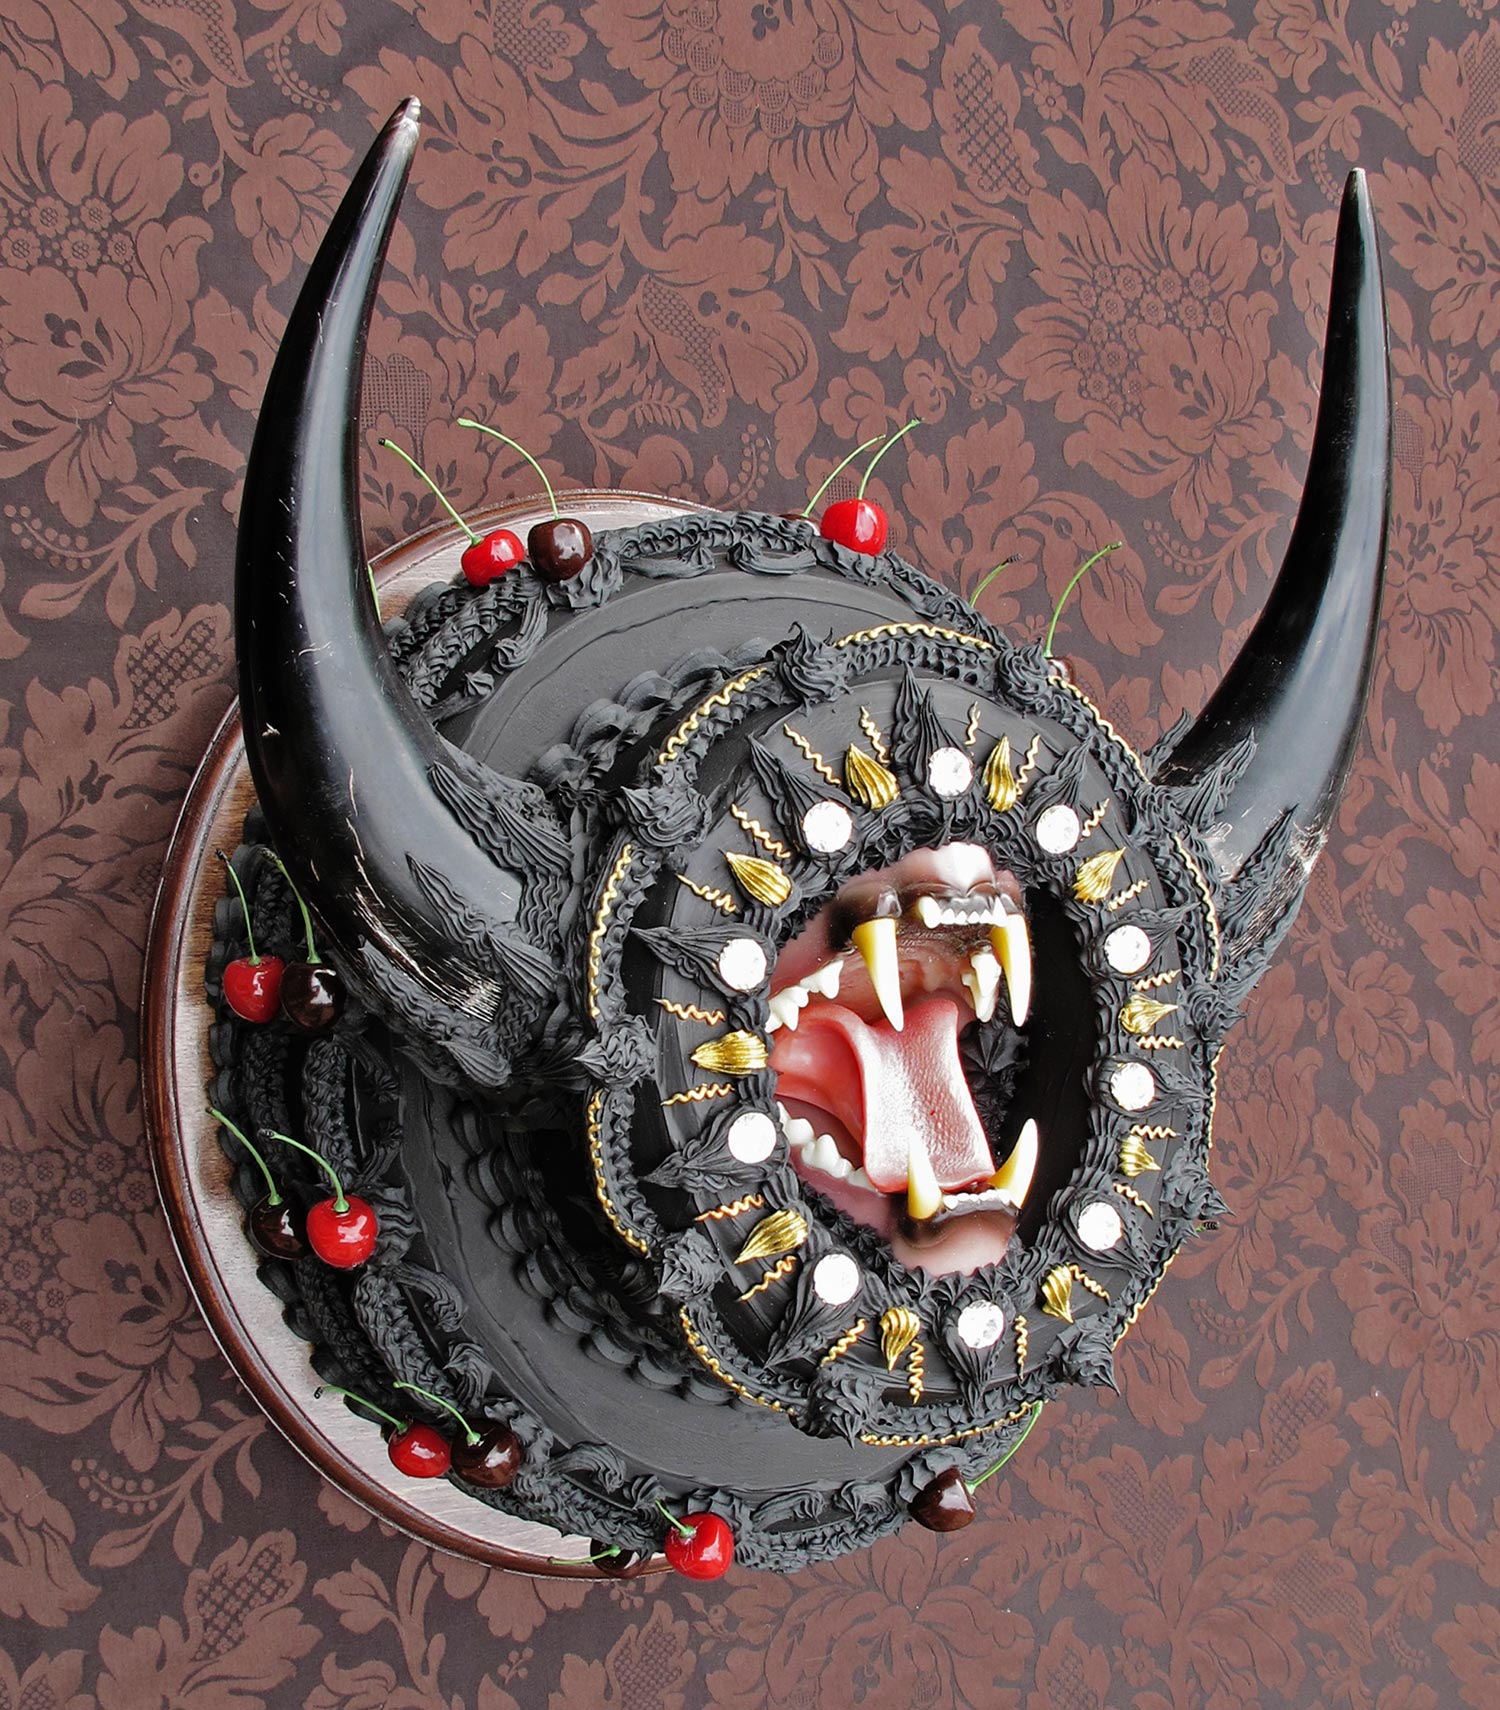 Scott Hove, Cake Fangs - black horned cake